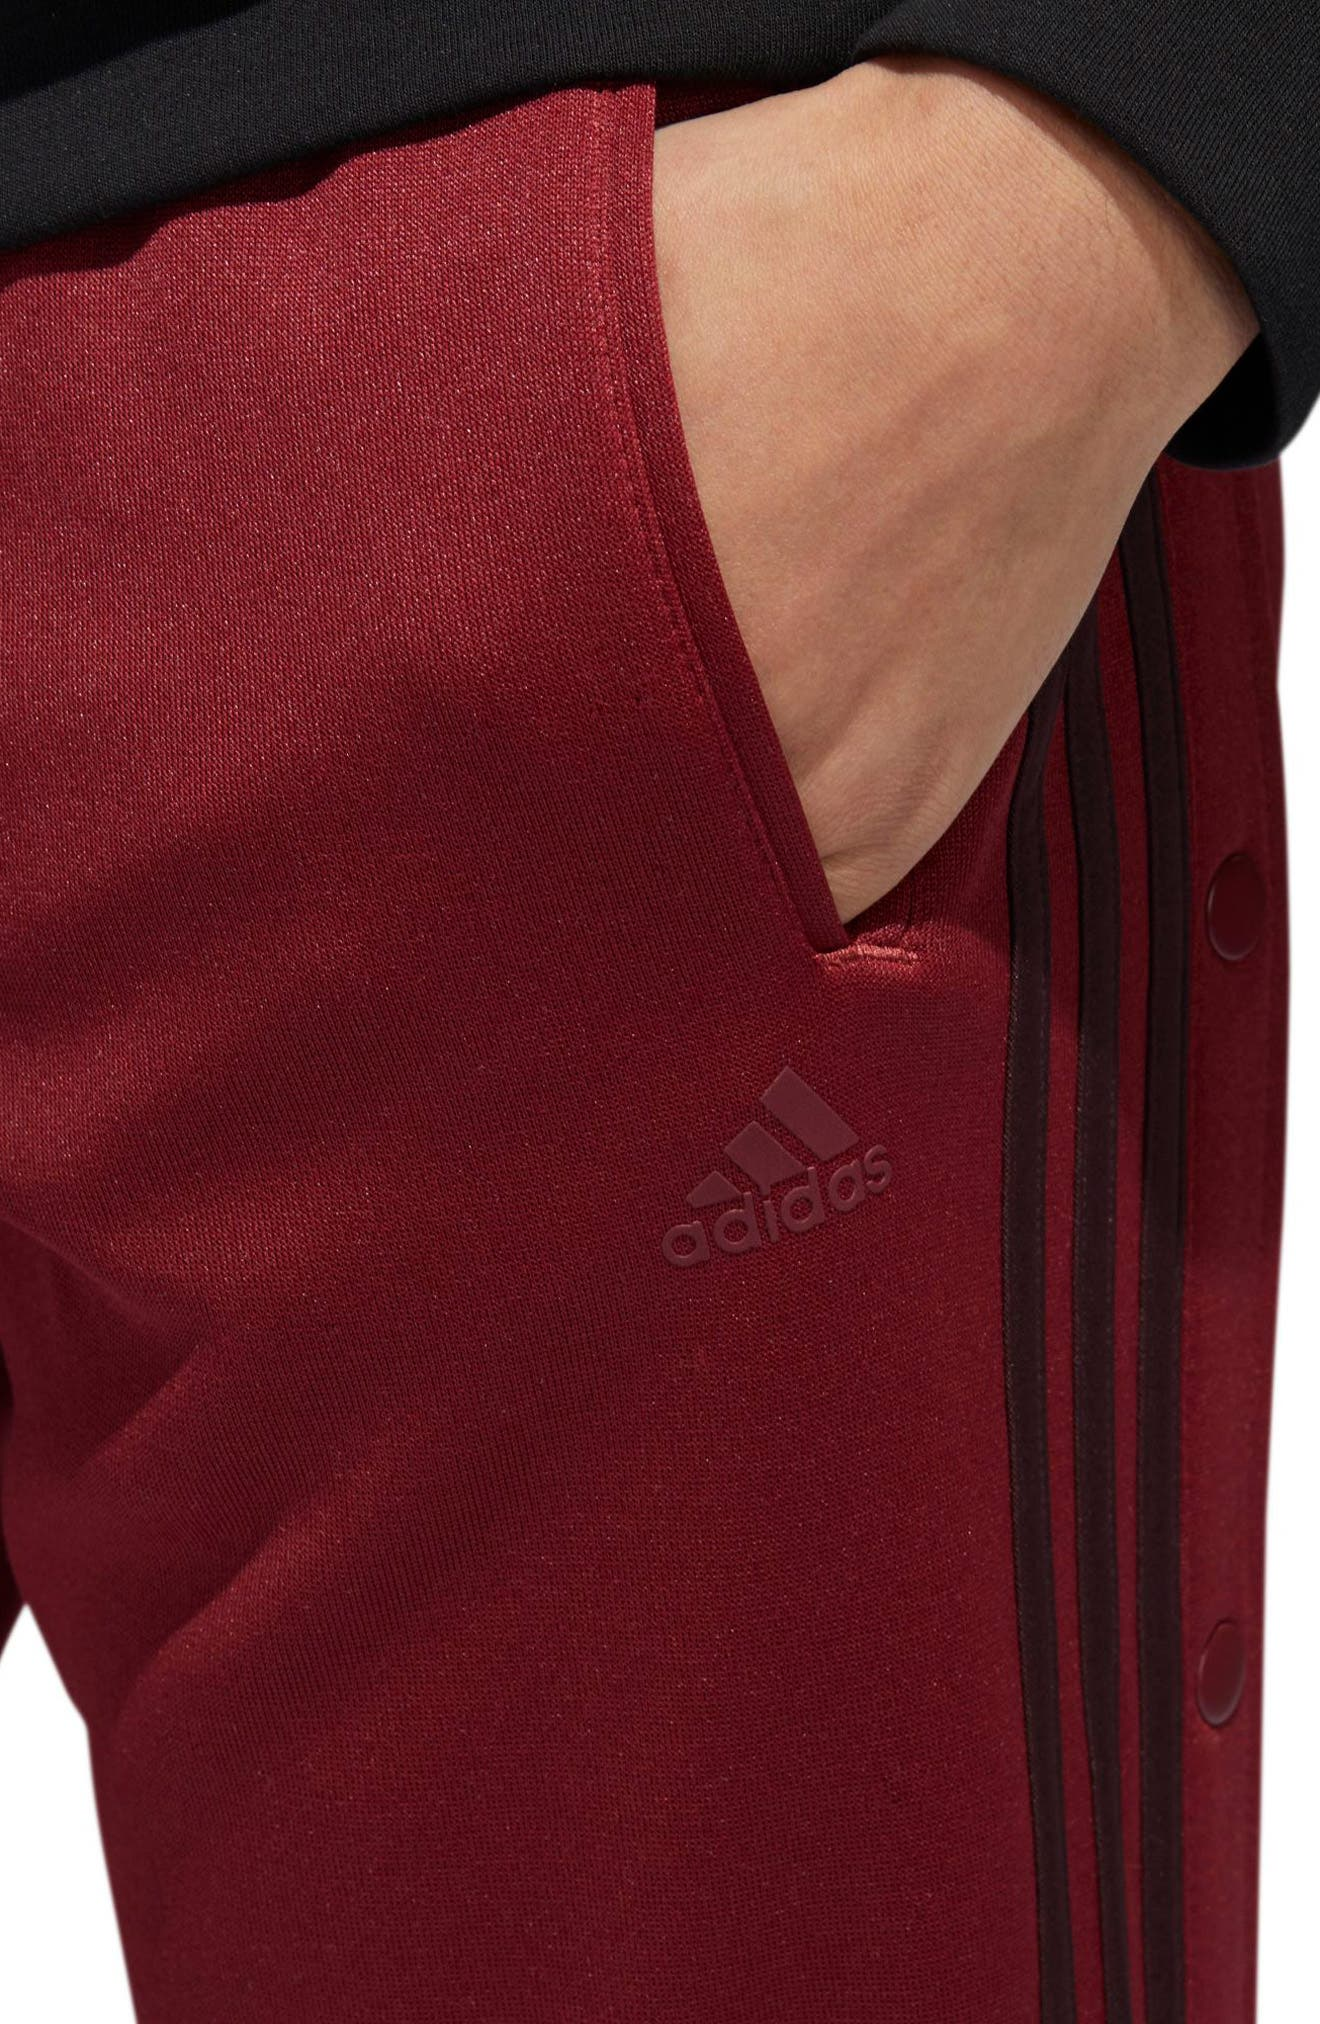 Tricot Snap Pants,                             Alternate thumbnail 7, color,                             NOBLE MAROON/ NIGHT RED